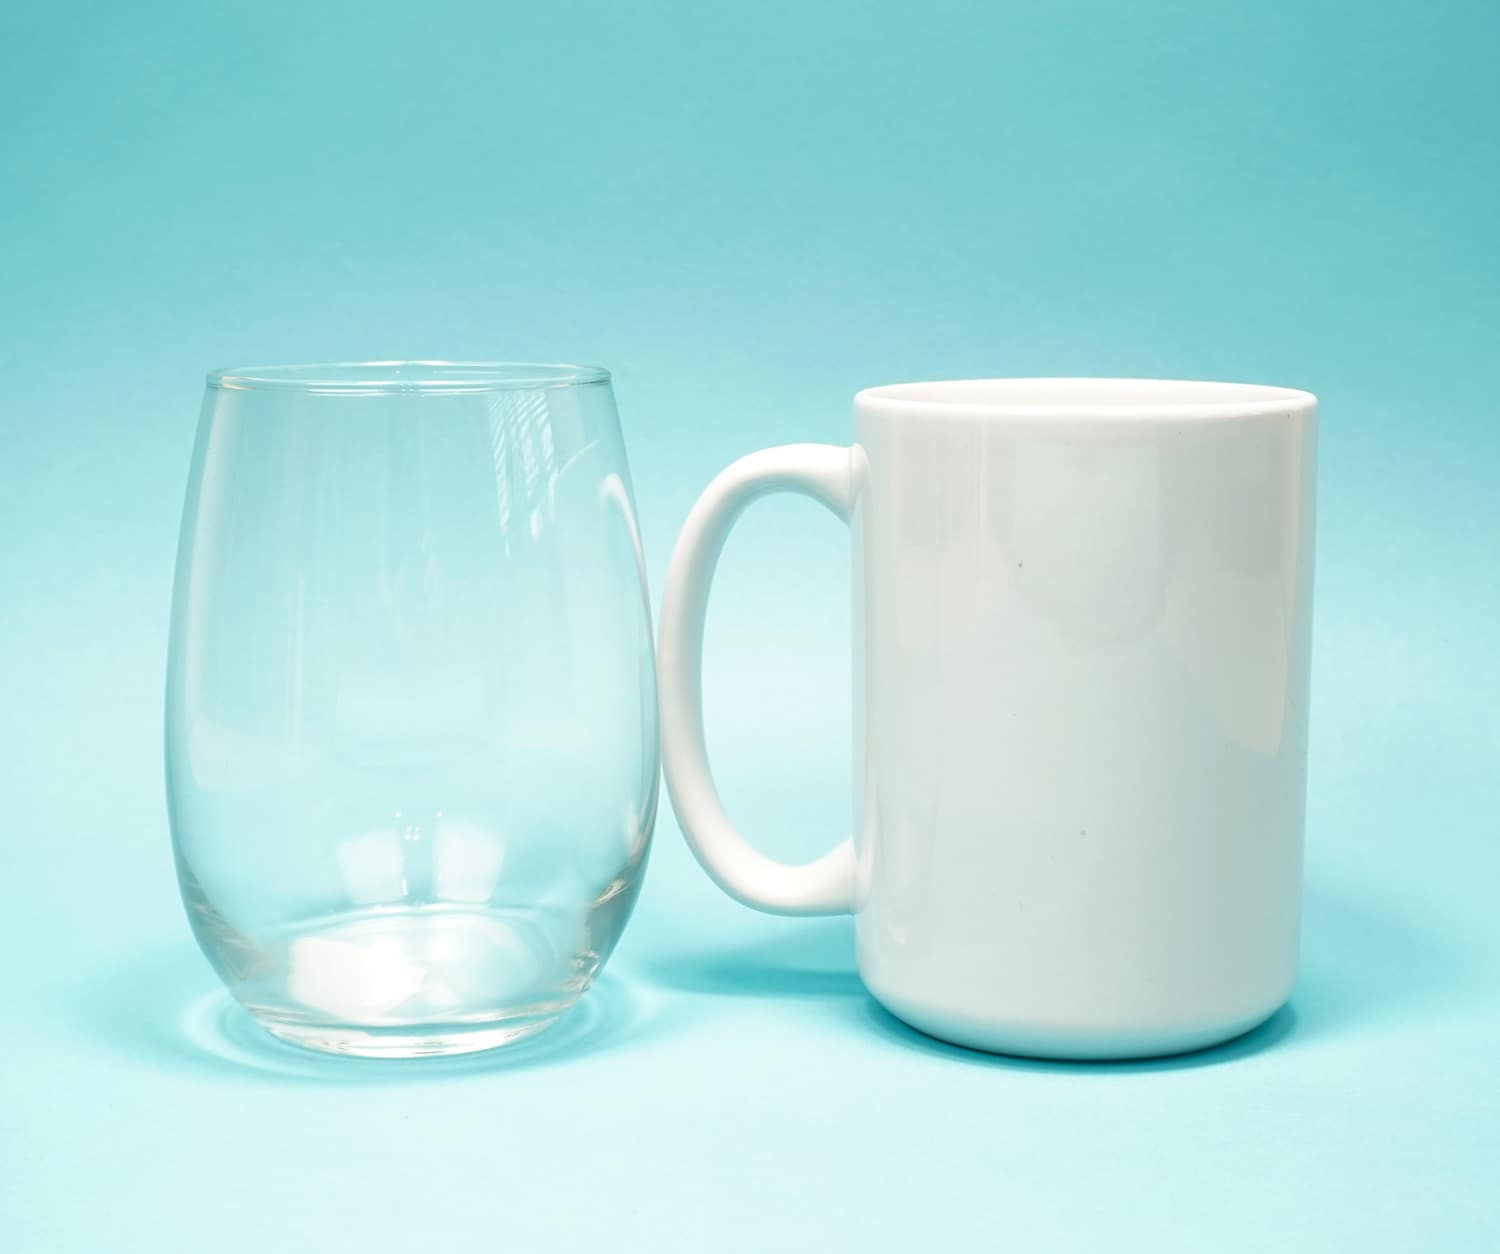 Clear stemless wine glass and white mug on light blue background